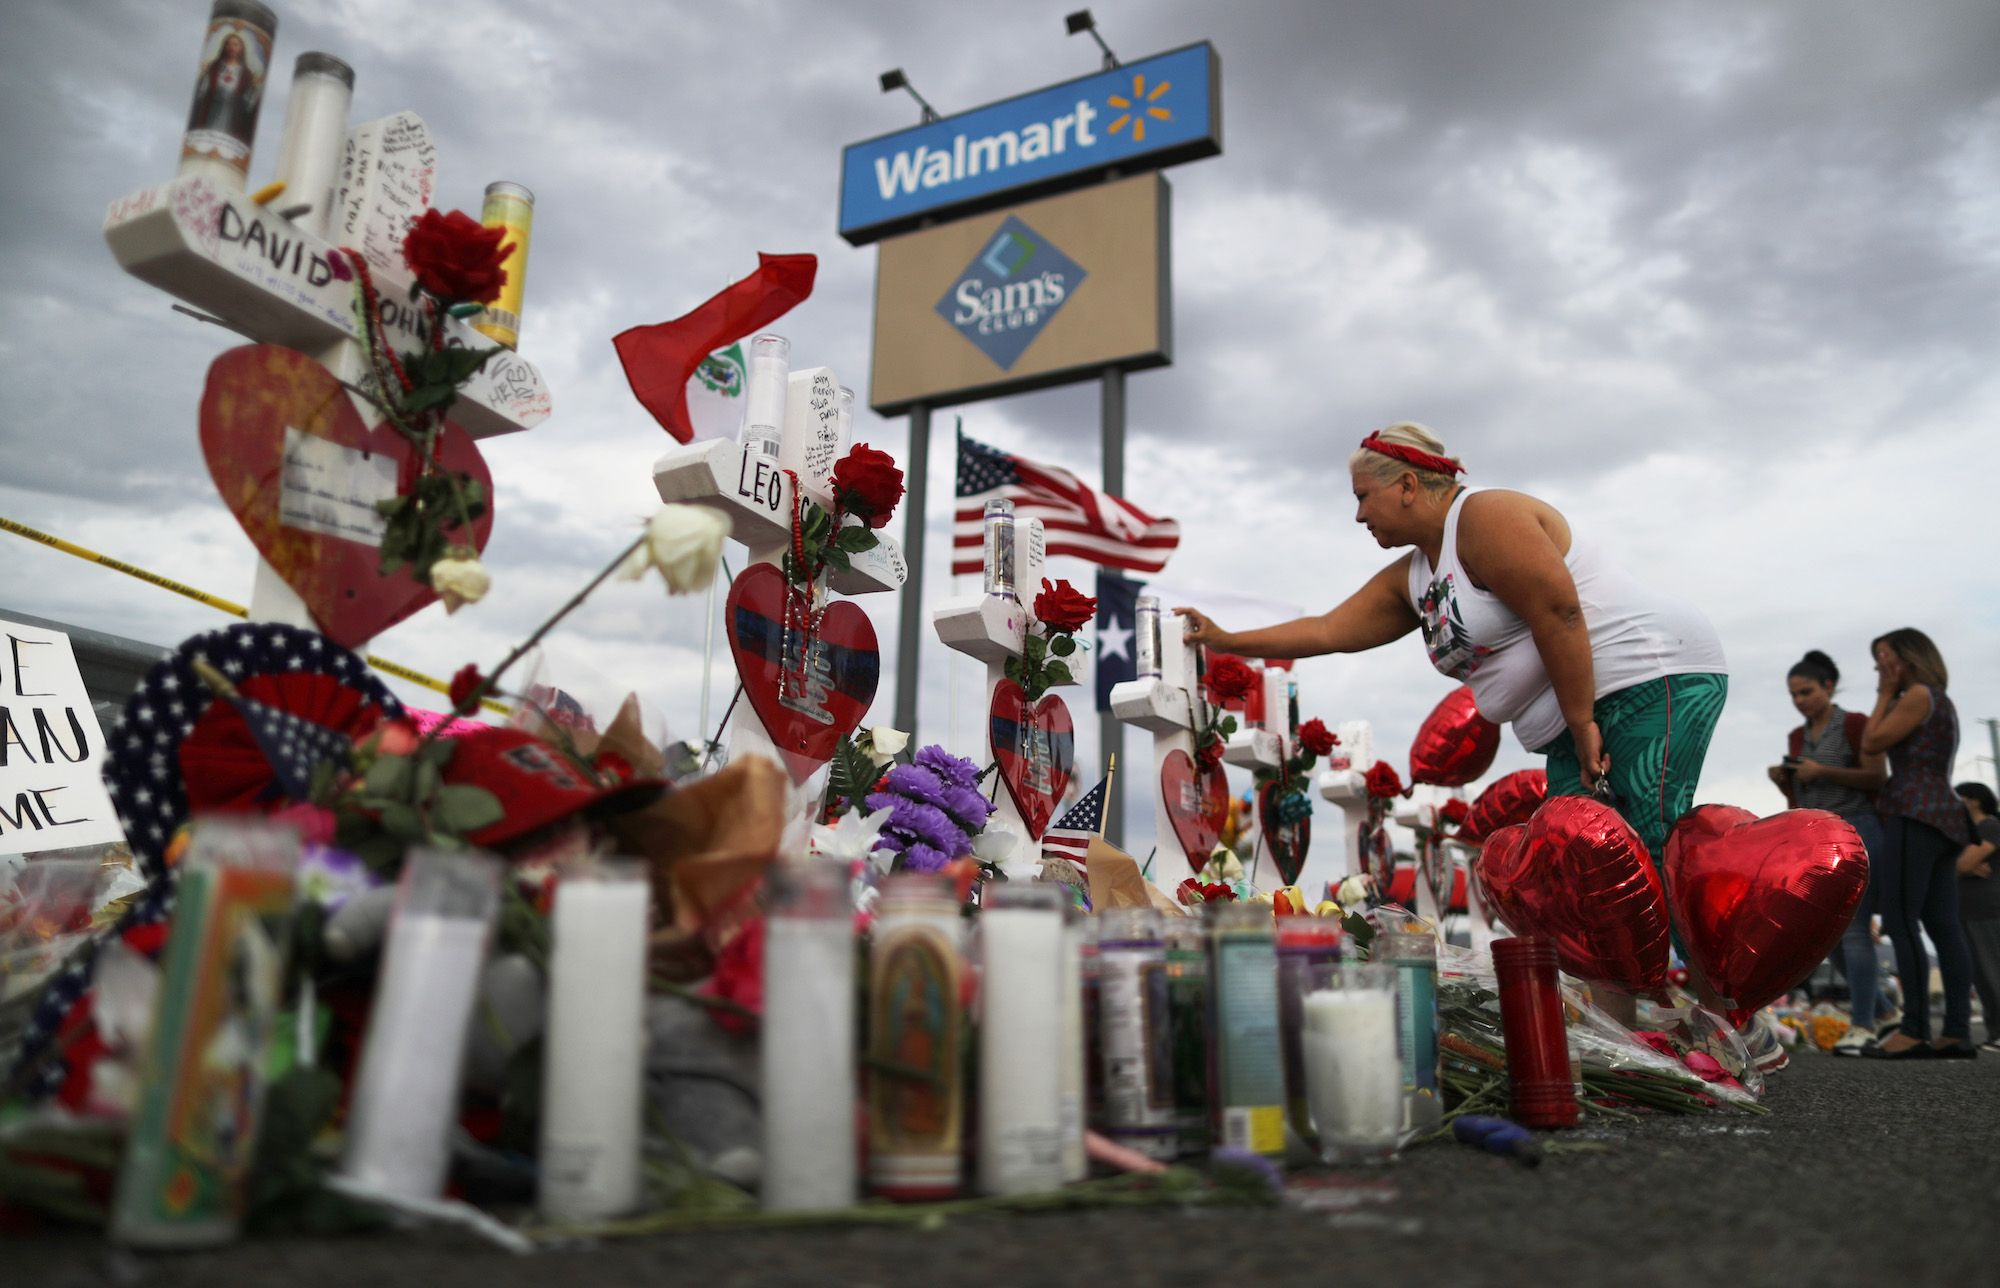 Faced With Gun Violence in Its Stores, Walmart Turns to Fantastical Thinking